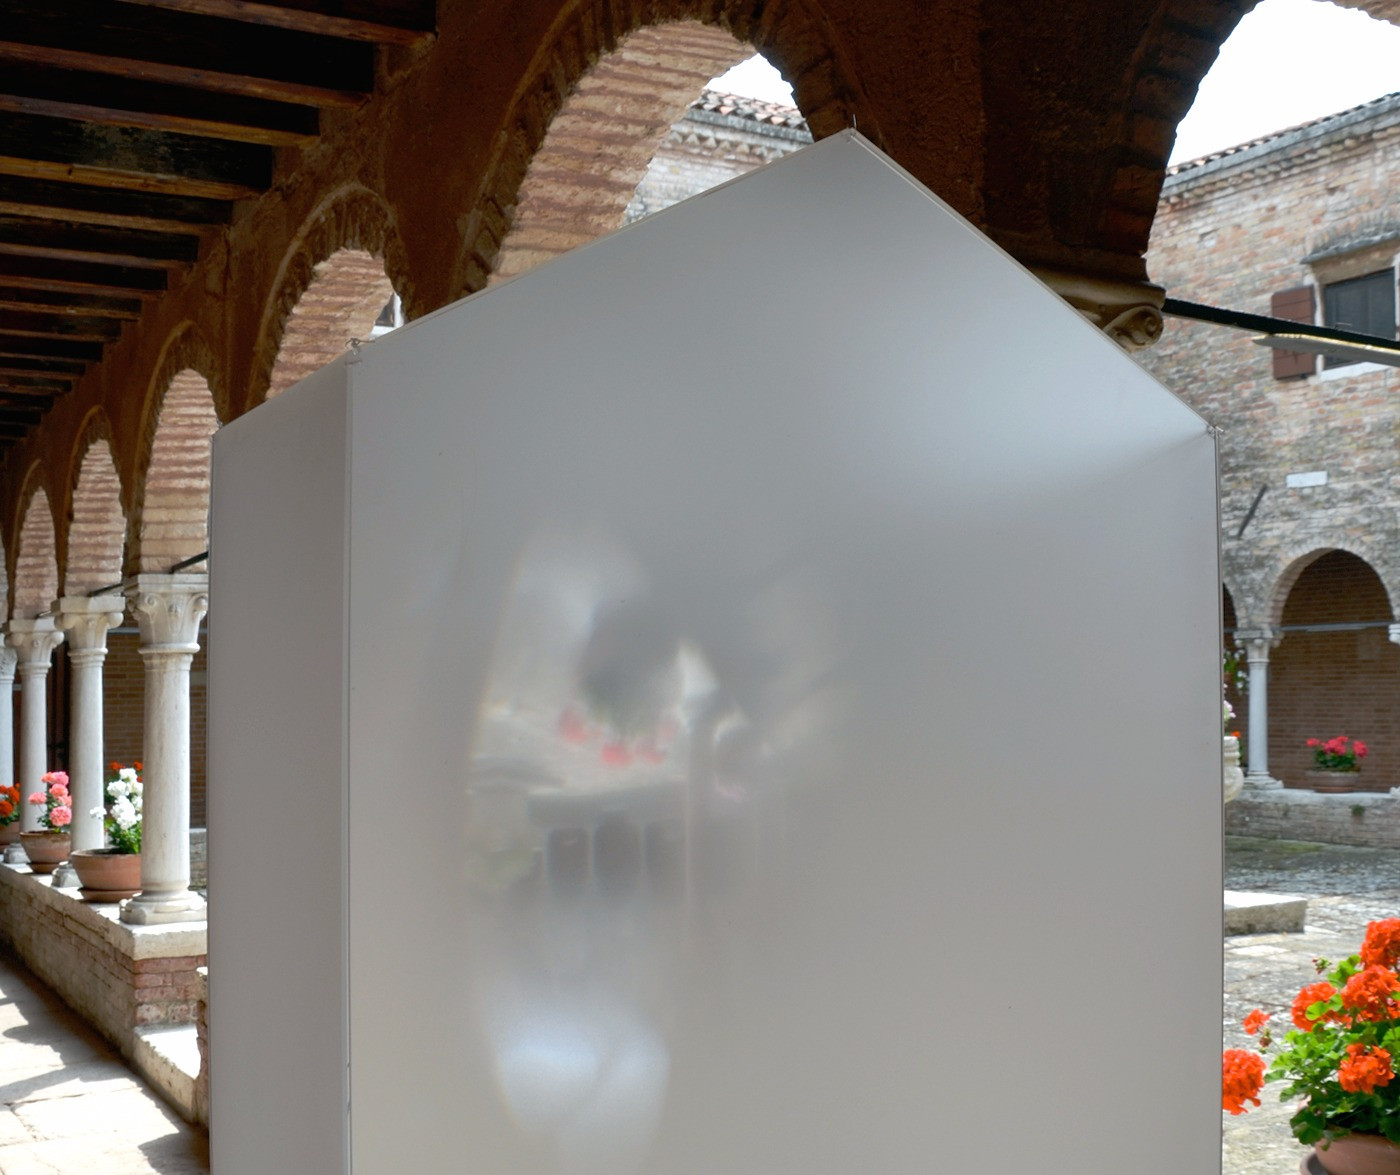 Moving life - Oh beata solitudo, oh sola magnitudo. San Francesco del Deserto, 2013